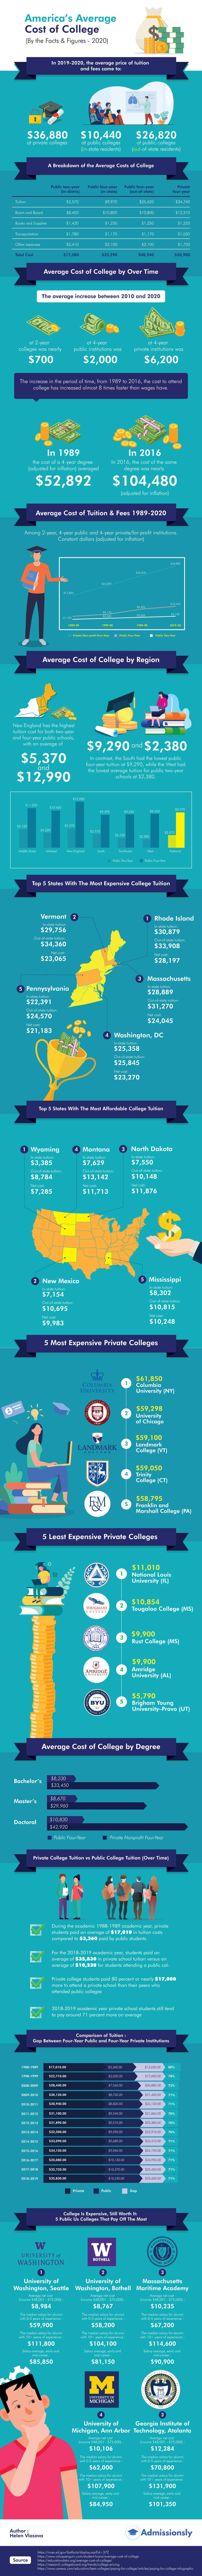 How Much Does College Cost in The U.S? (Facts & Figures) – 2020